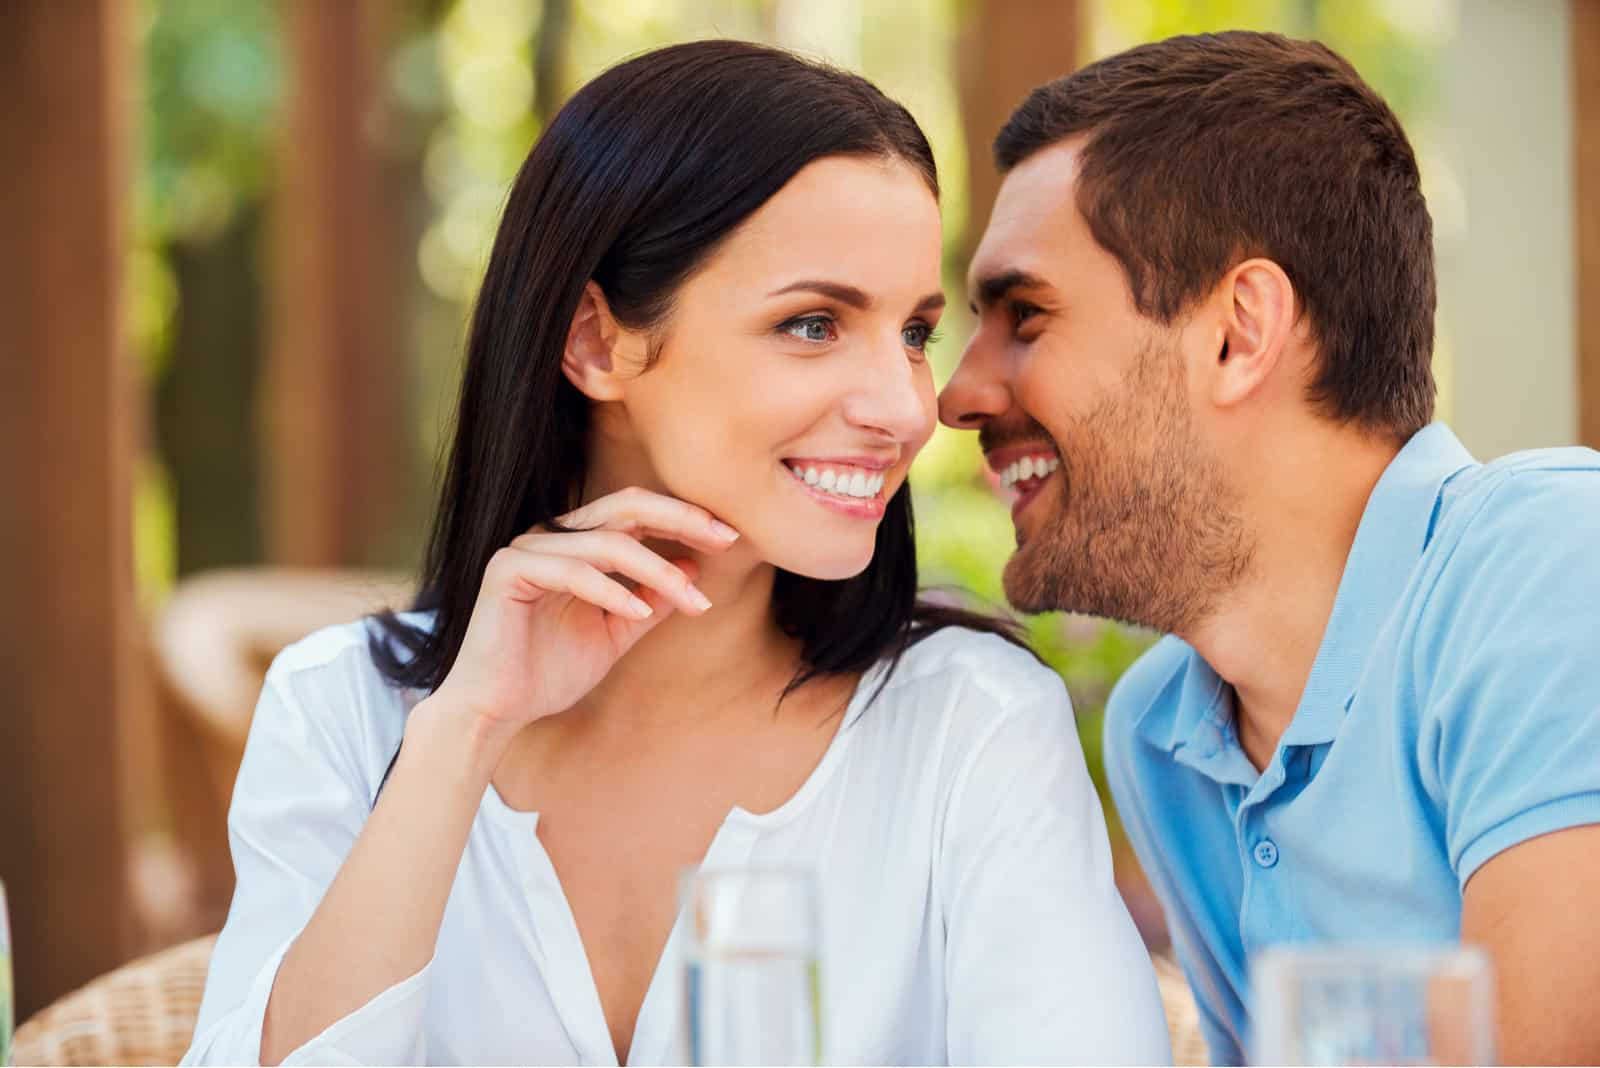 Handsome young man telling something to his girlfriend and smiling while sitting at the table outdoors together